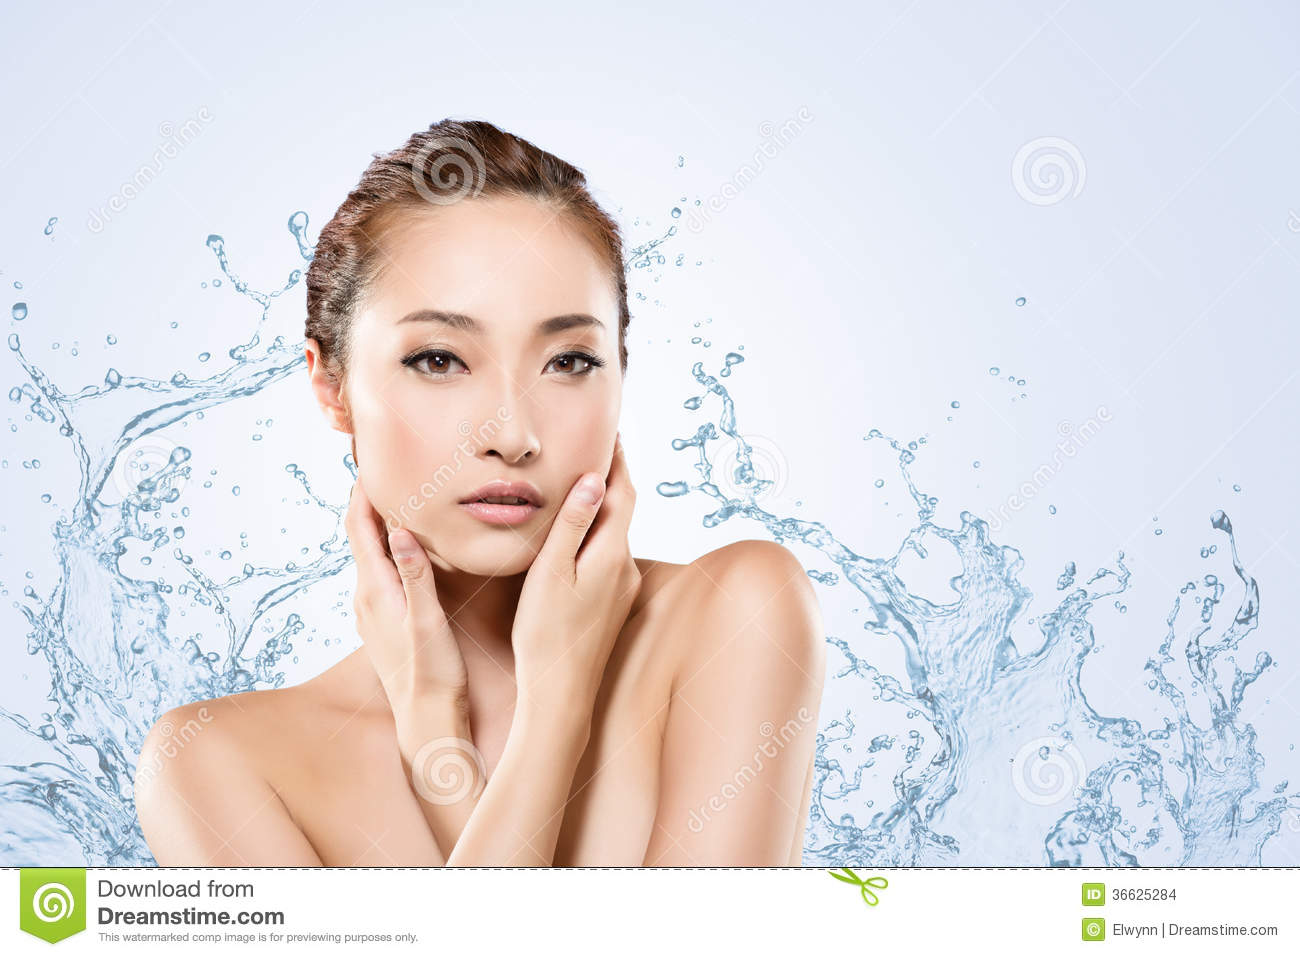 how to clean face without water